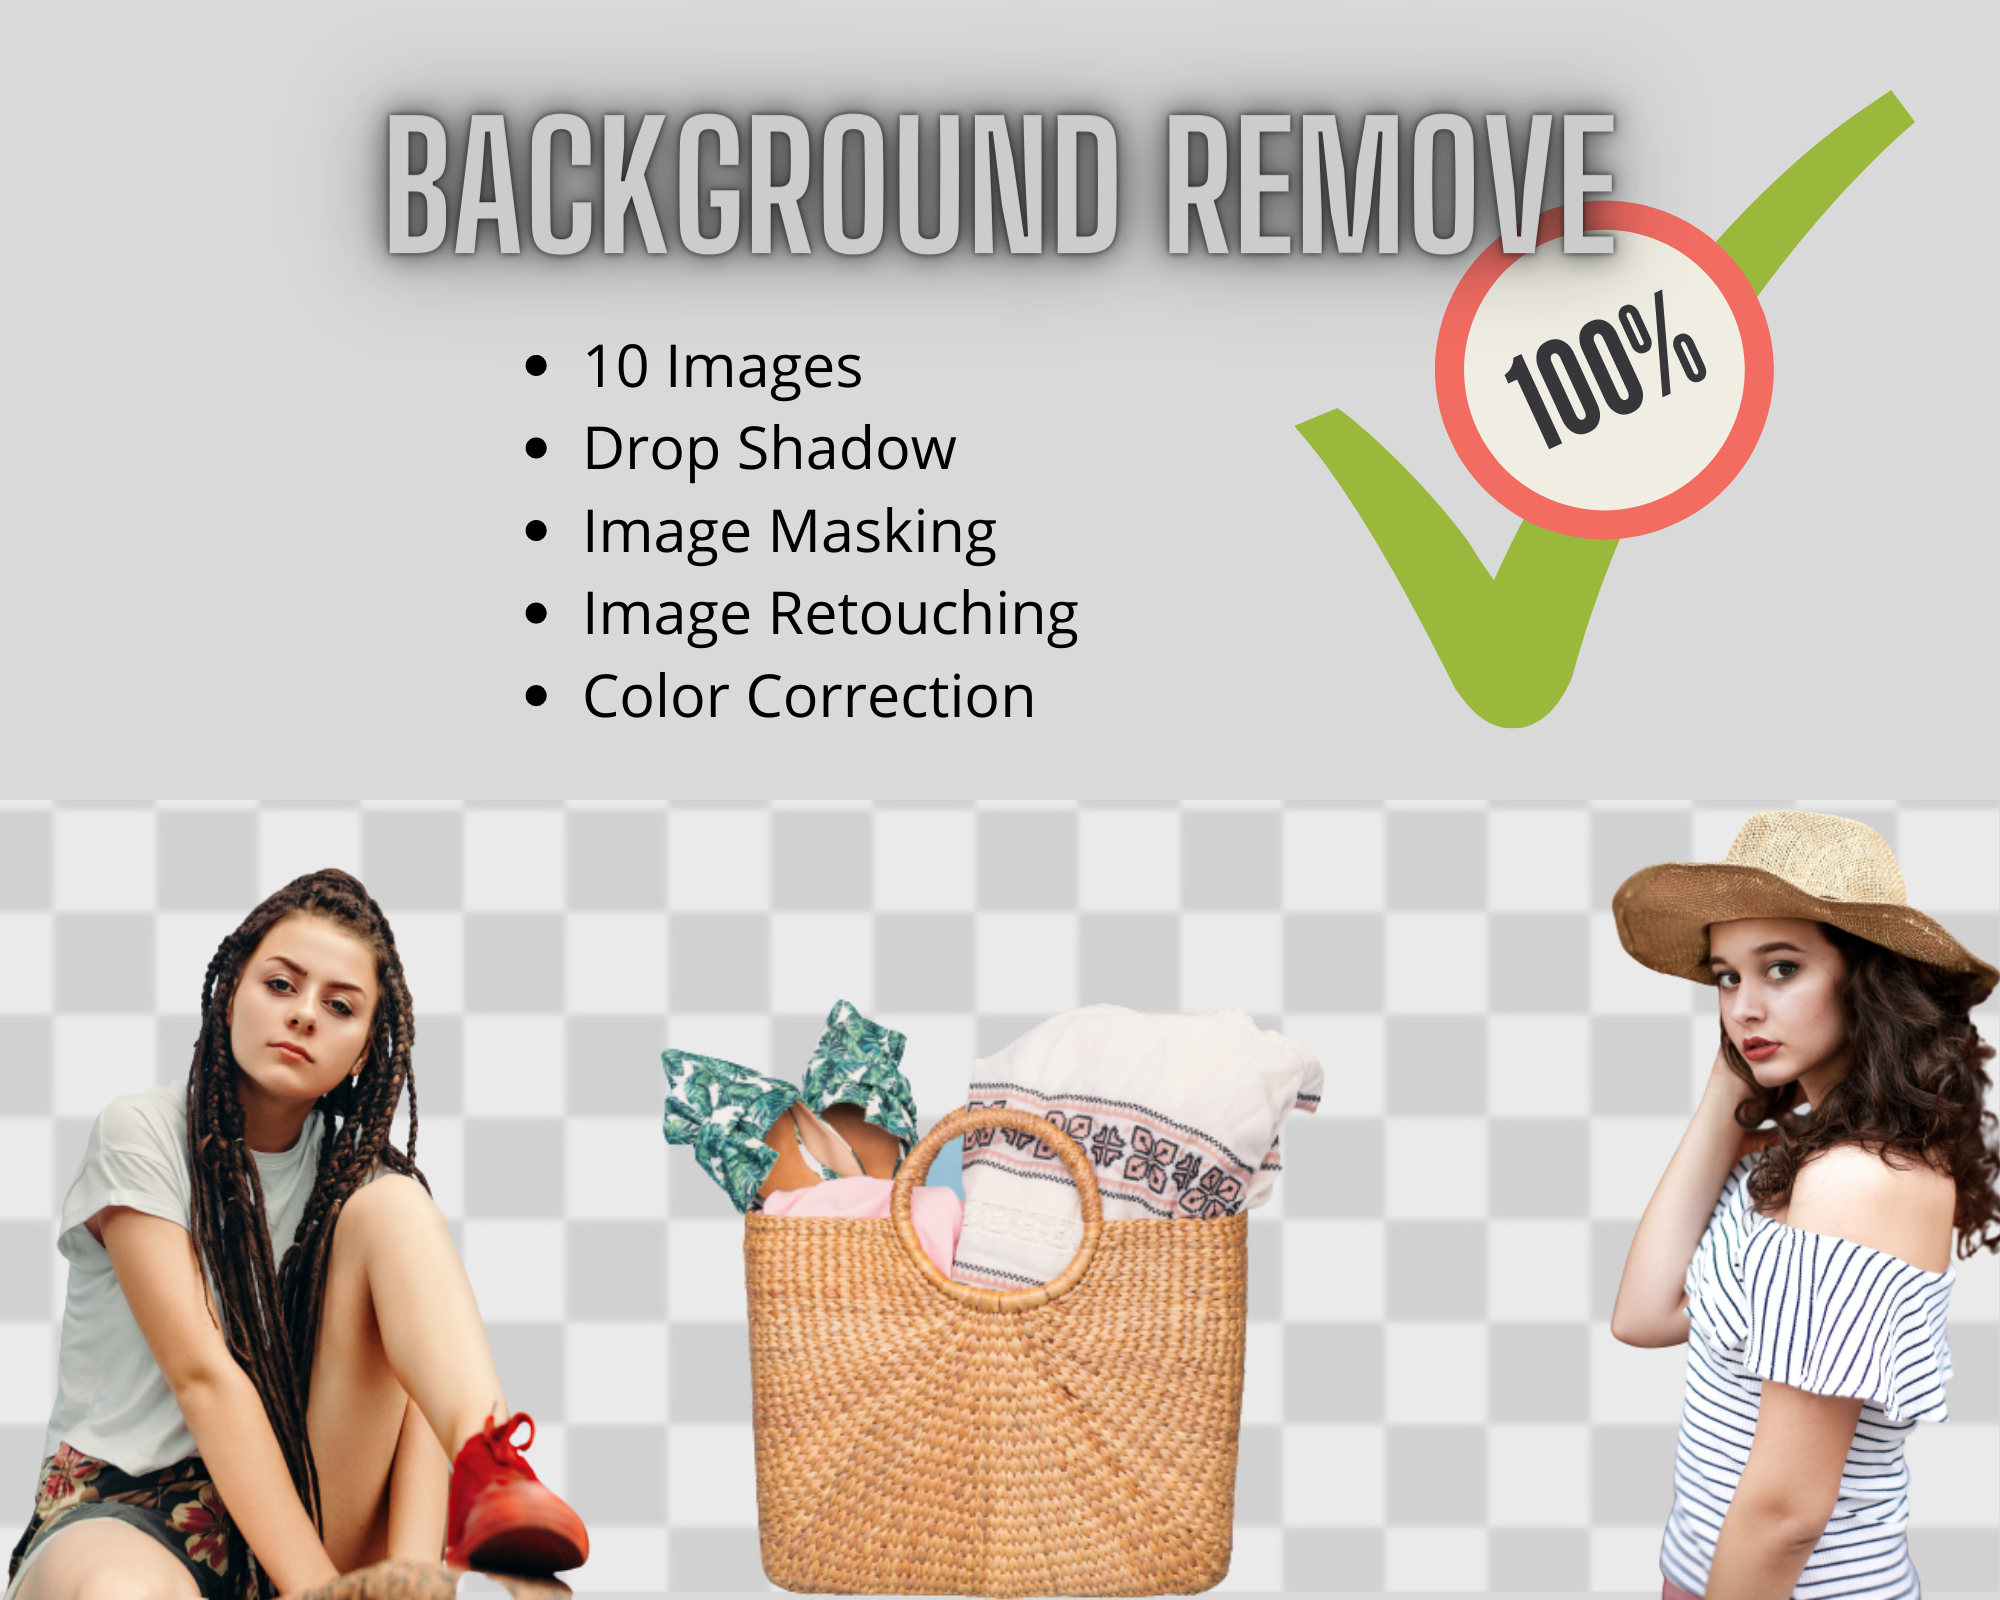 High quality Background Remove within 24hrs 10pcs With Guarantee.